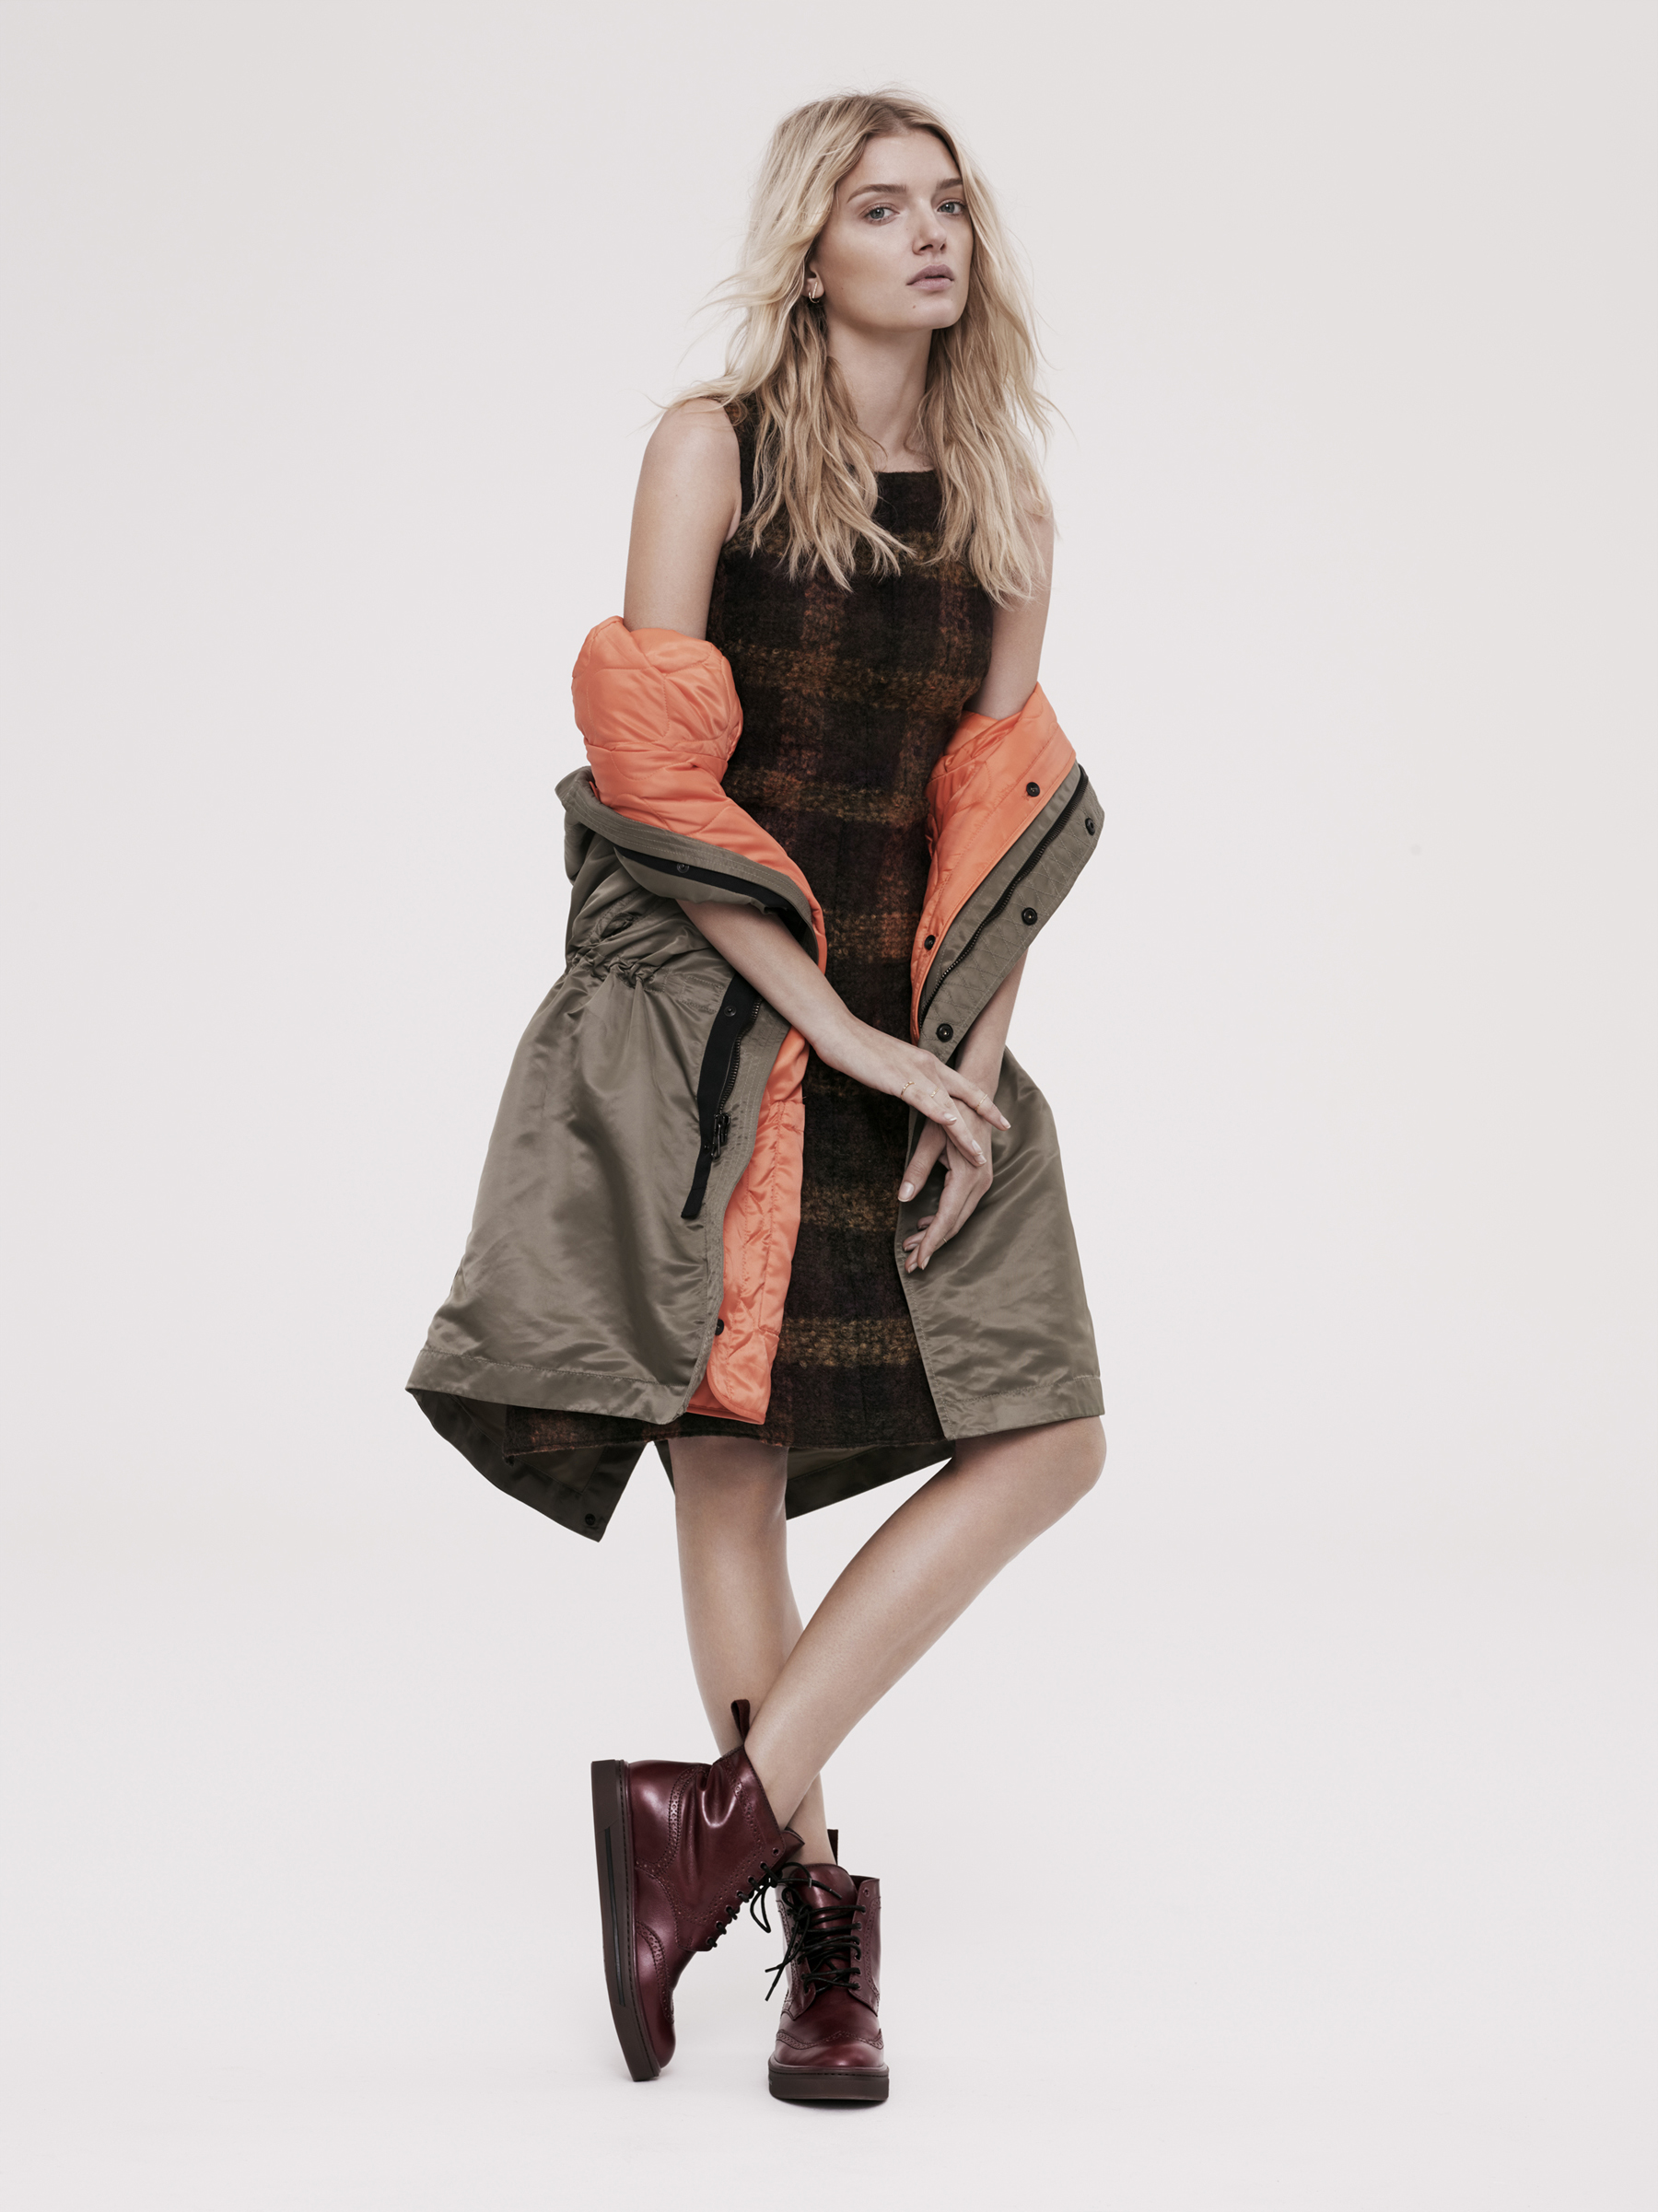 Lily Donaldson In Tough Luxe Looks